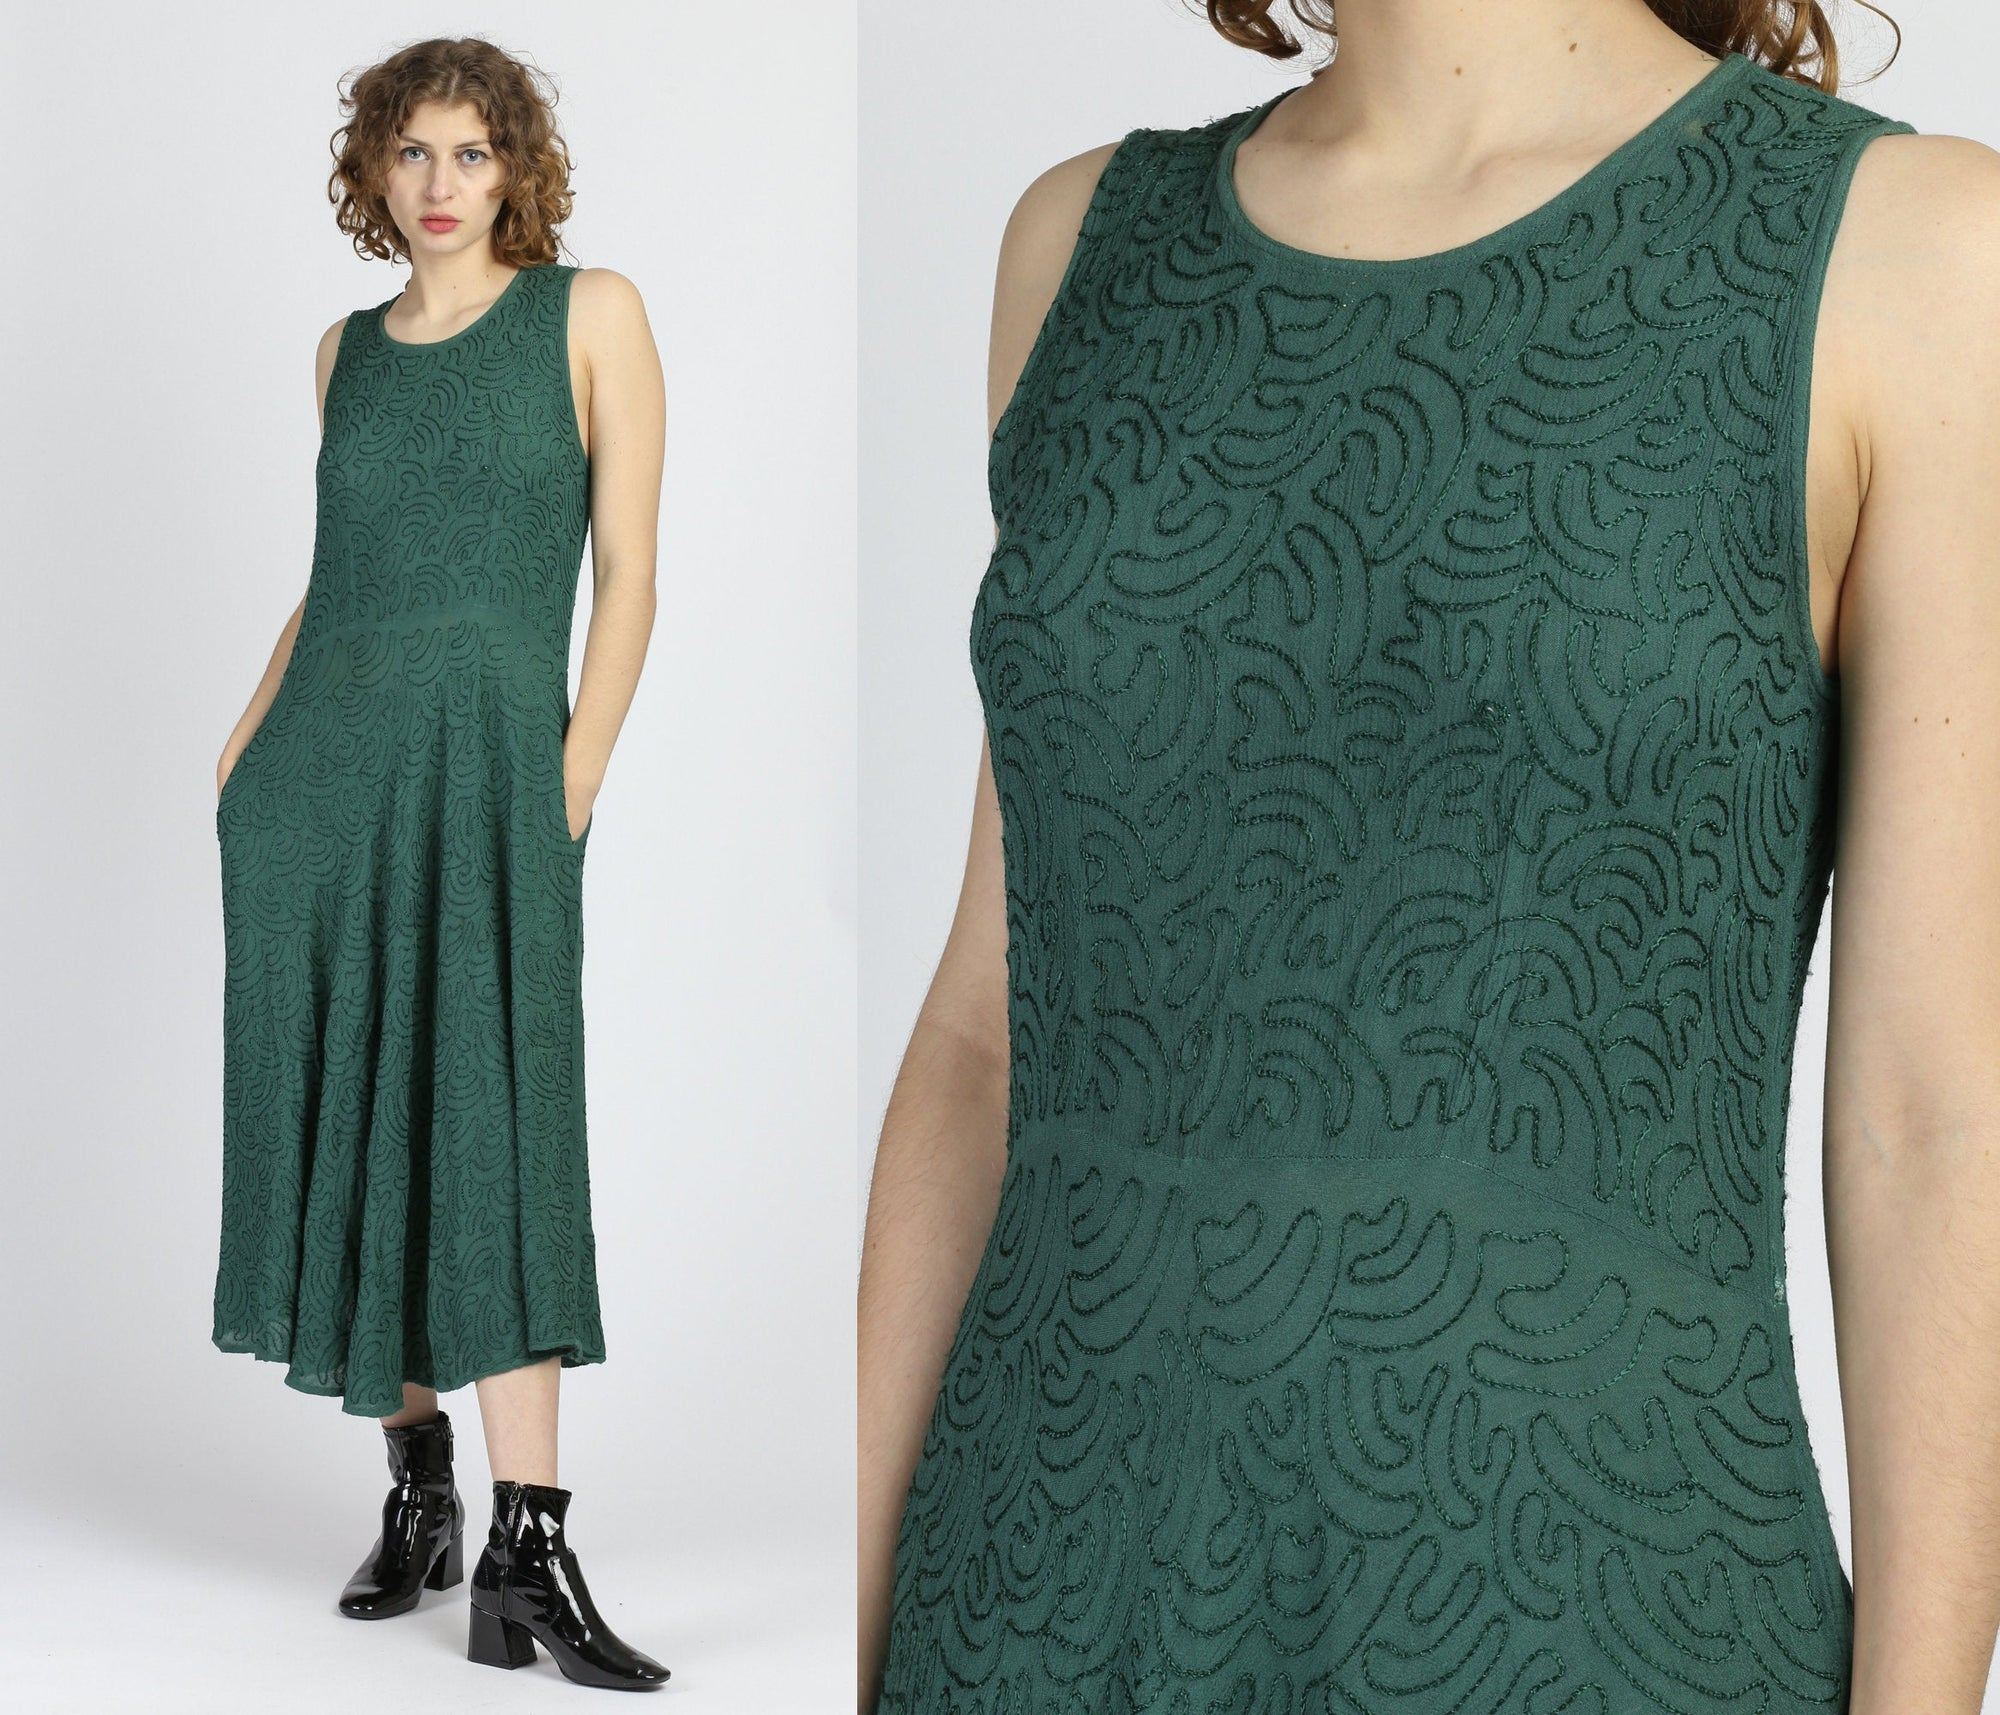 90s Boho Green Embroidered Maxi Dress - One Size